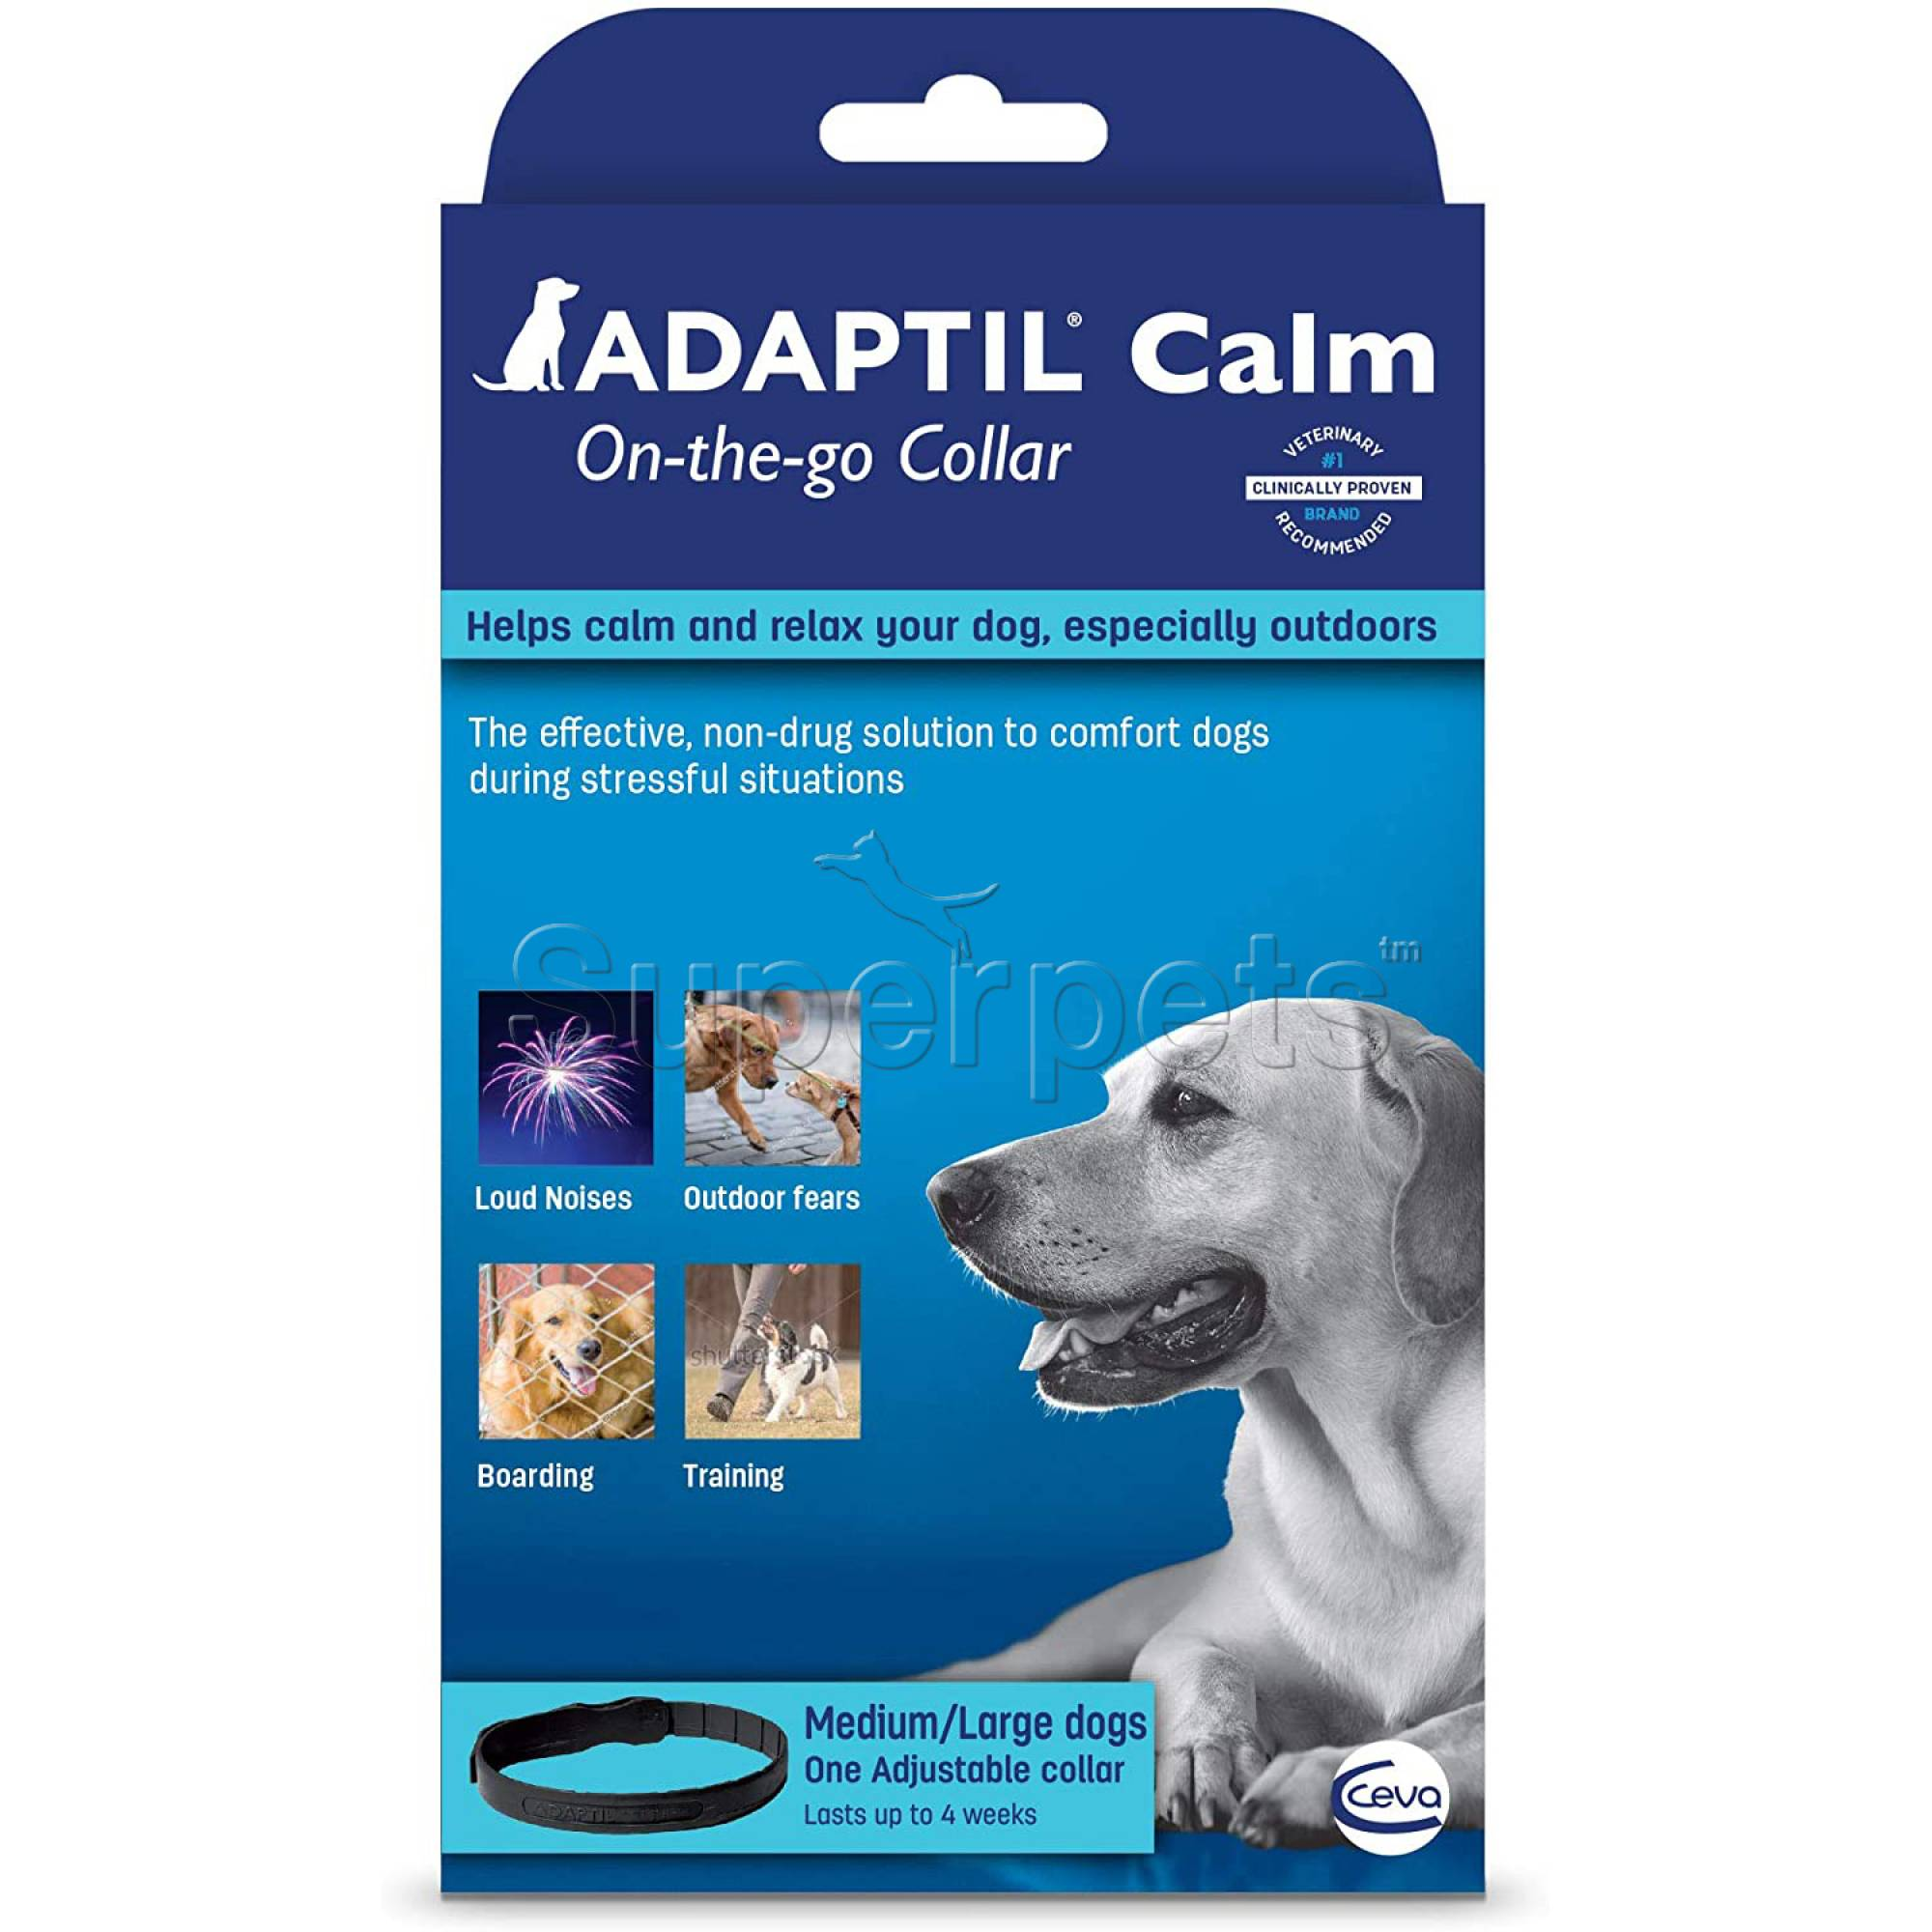 Adaptil Calm On-the-go Collar for Medium & Large Dogs (up to 67.5cm)